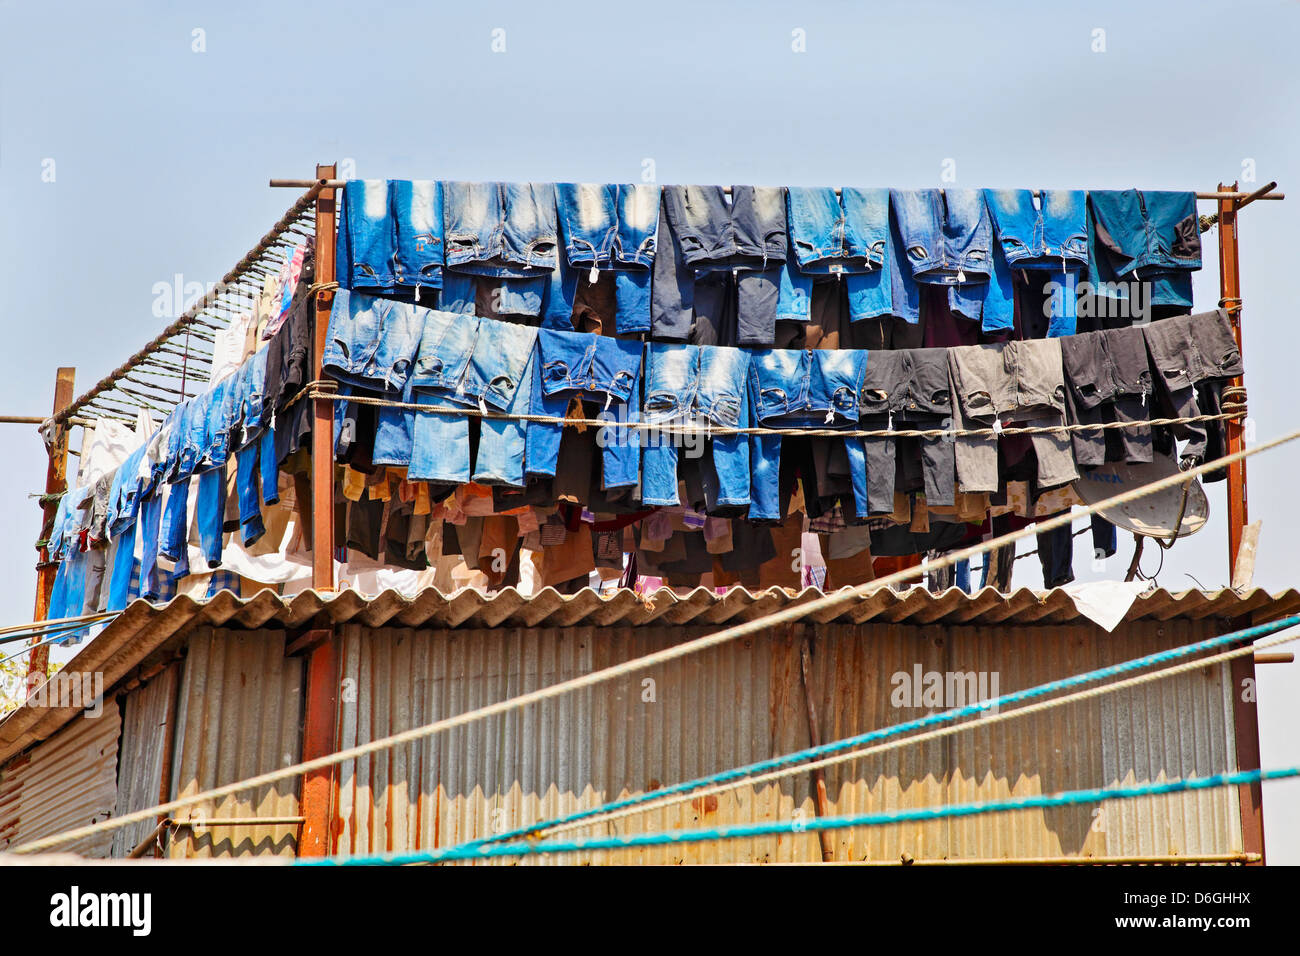 Denim Jeans washed and hanging out to dry in the mid day sun at a commercial washing factory. Location of shot Bombay - Stock Image